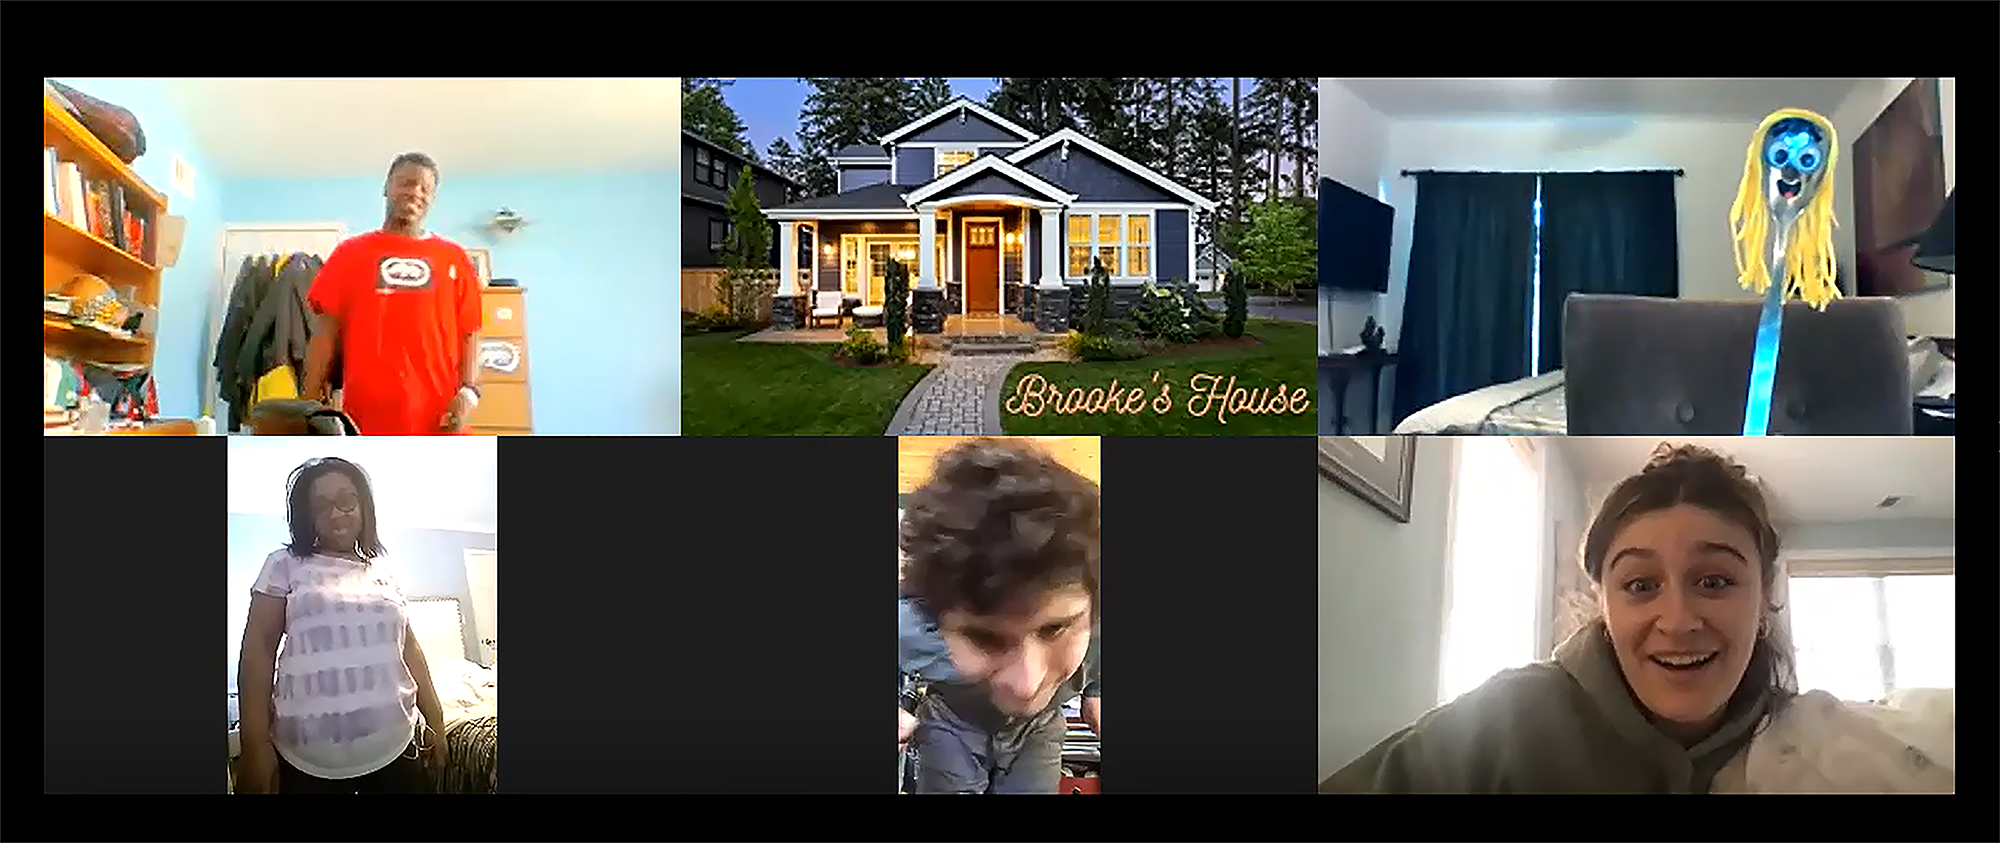 Another look at Brooke's House.